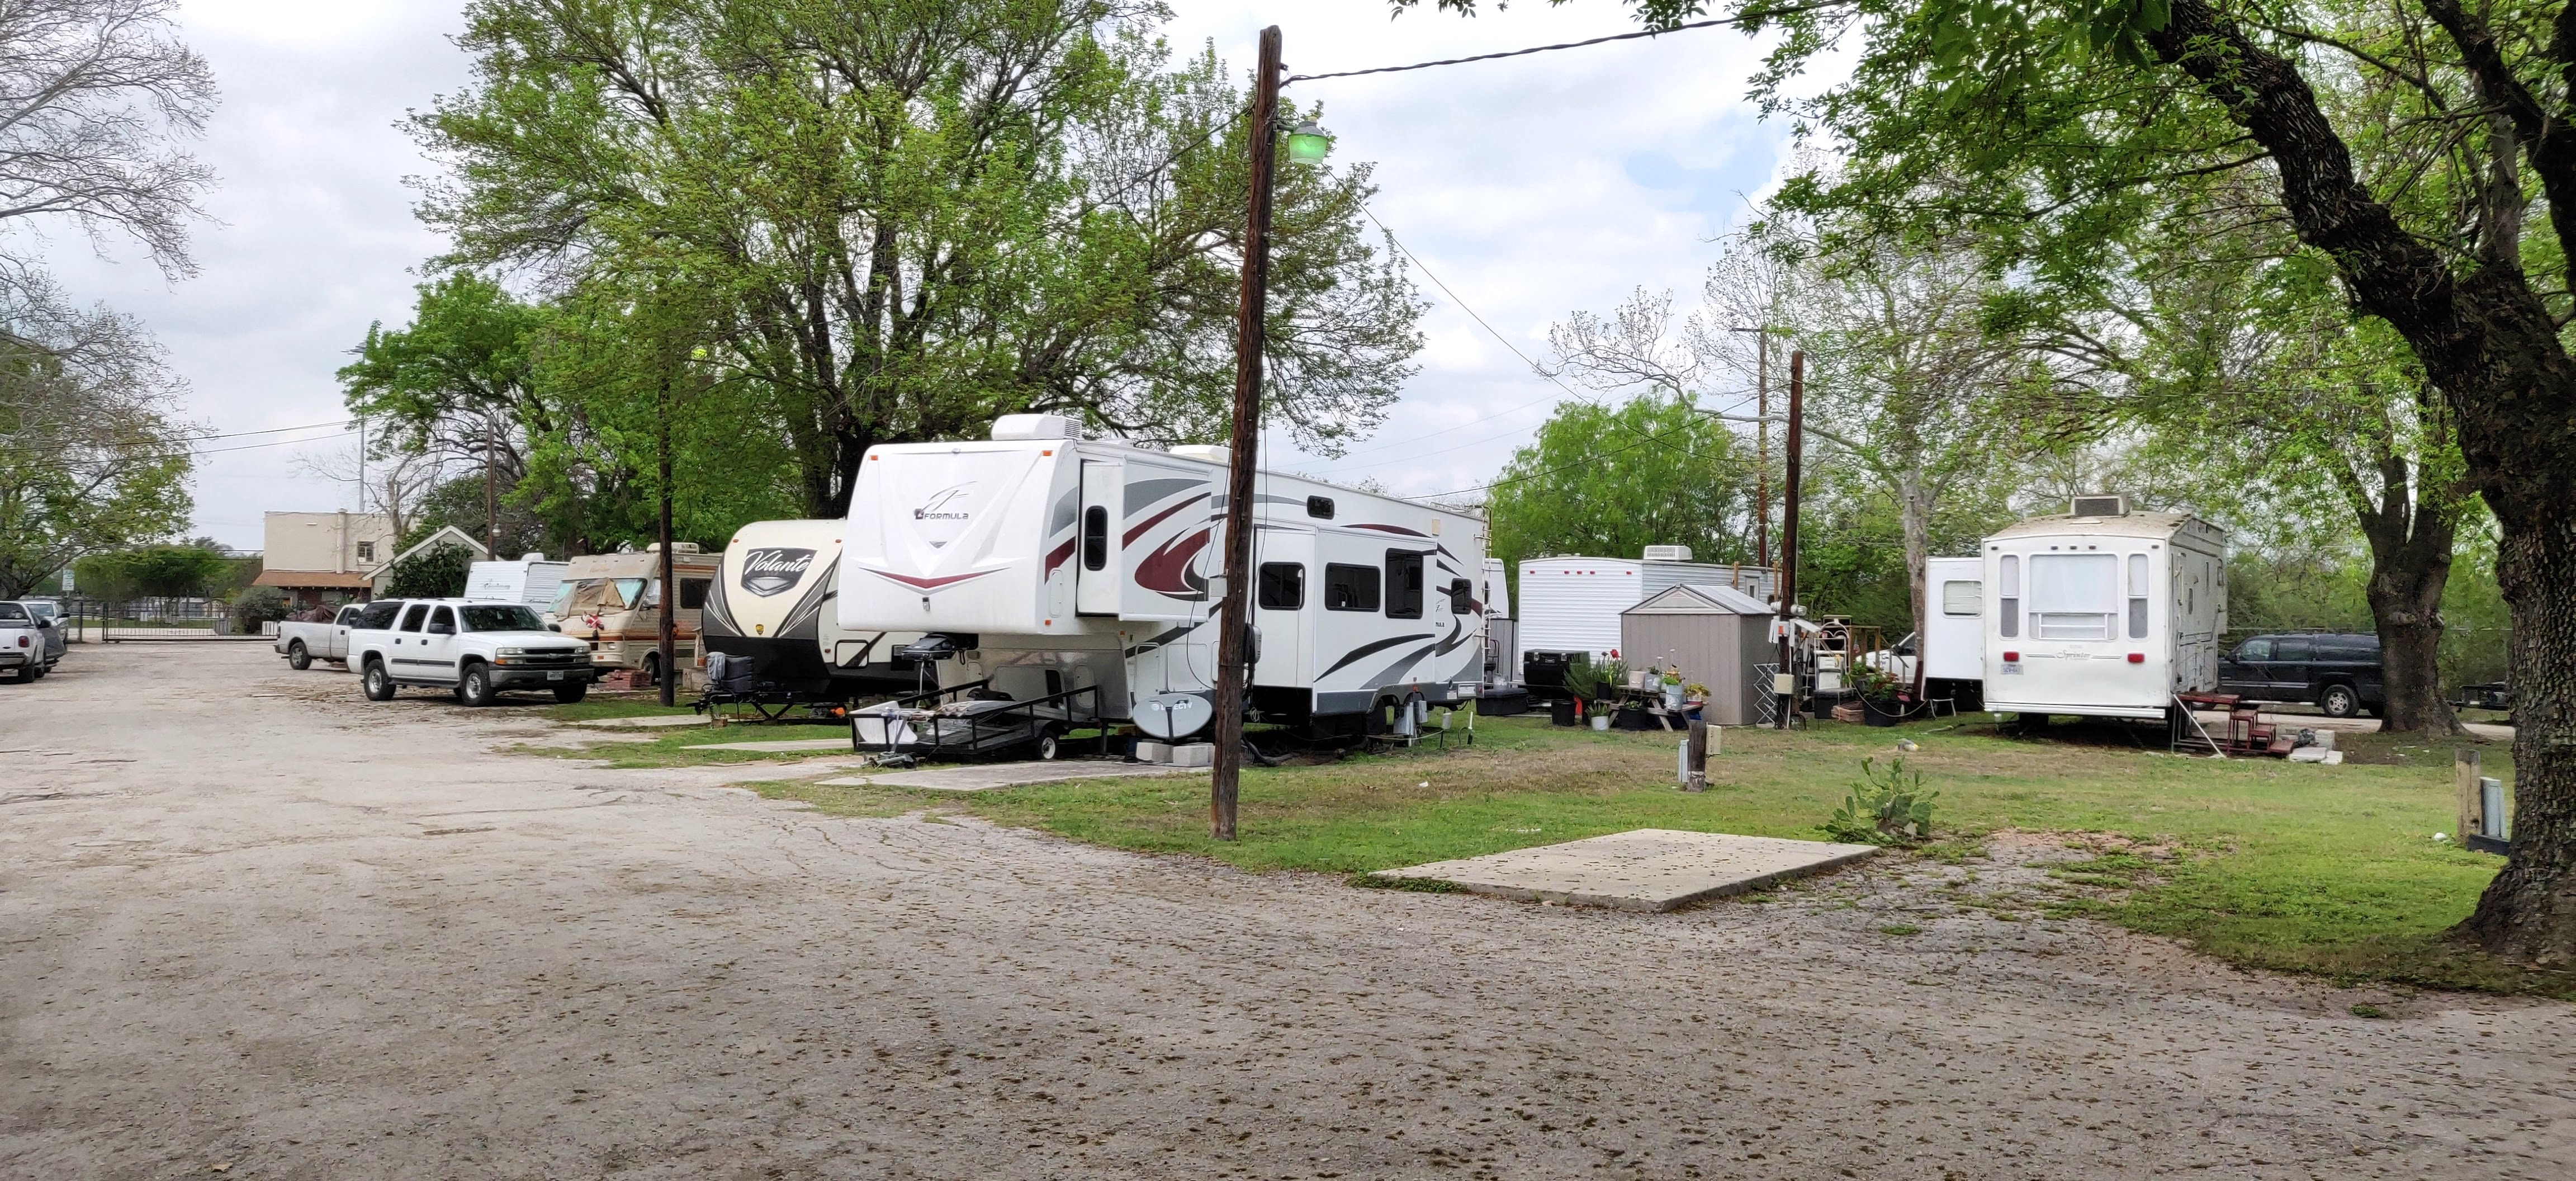 Lackland Mobile Home and RV Park - RV LOTS FOR RENT ONLY for rent